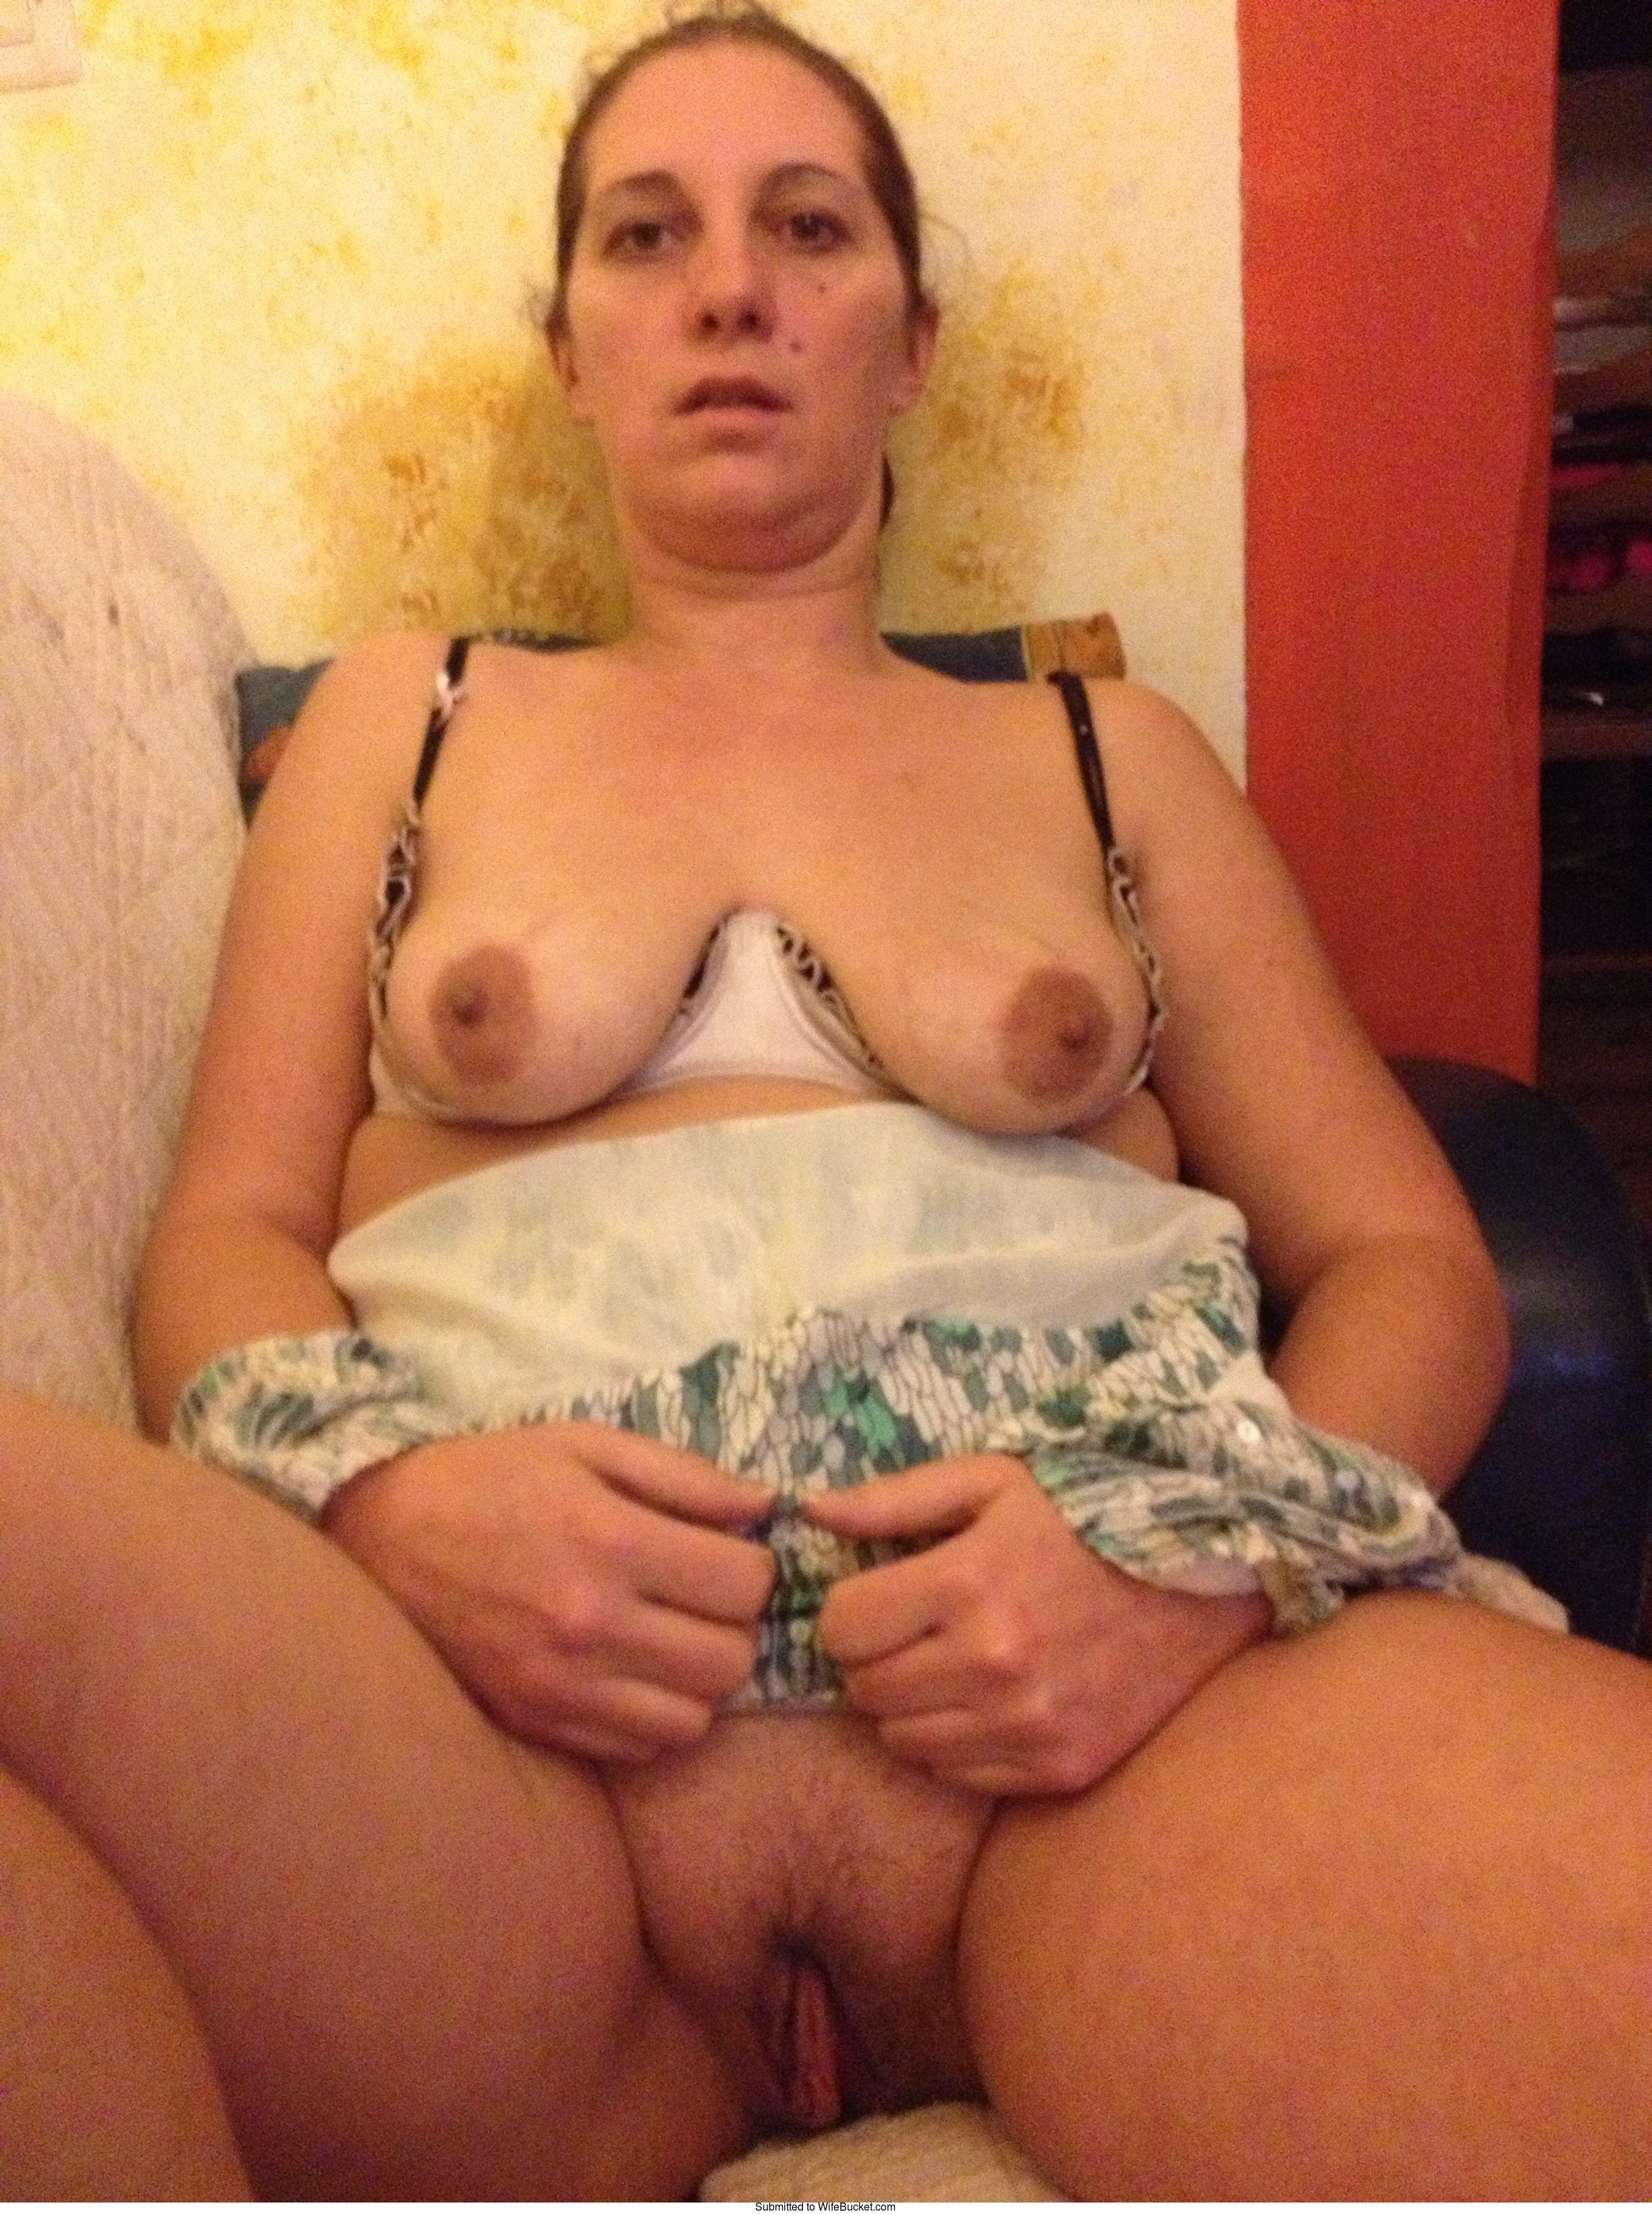 12 Milf Pussy Pictures Uploaded By Members  Wifebucket -8583